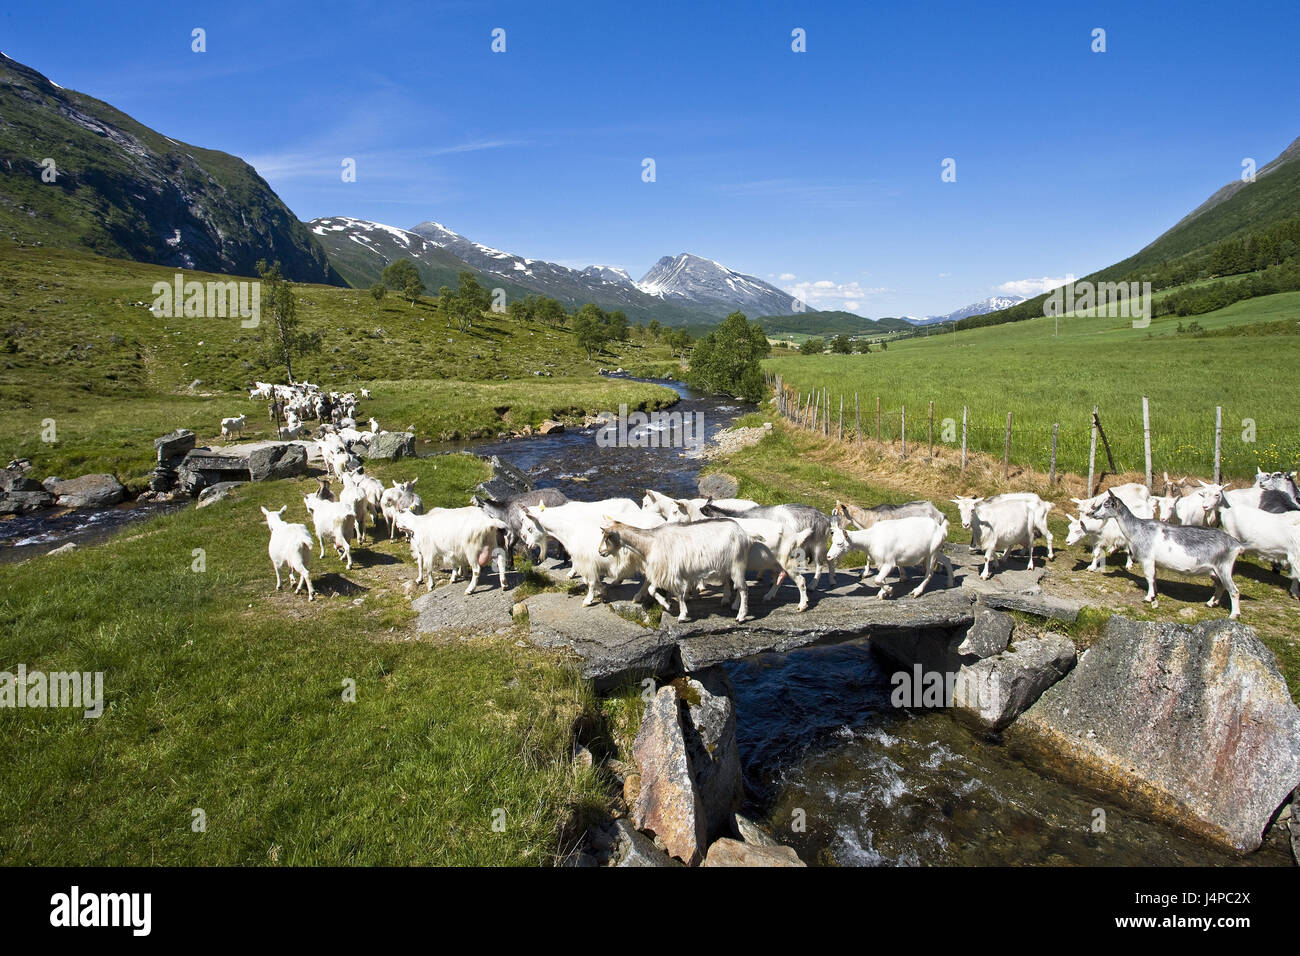 Norway, More og Romsdal, goat focuses, - Stock Image